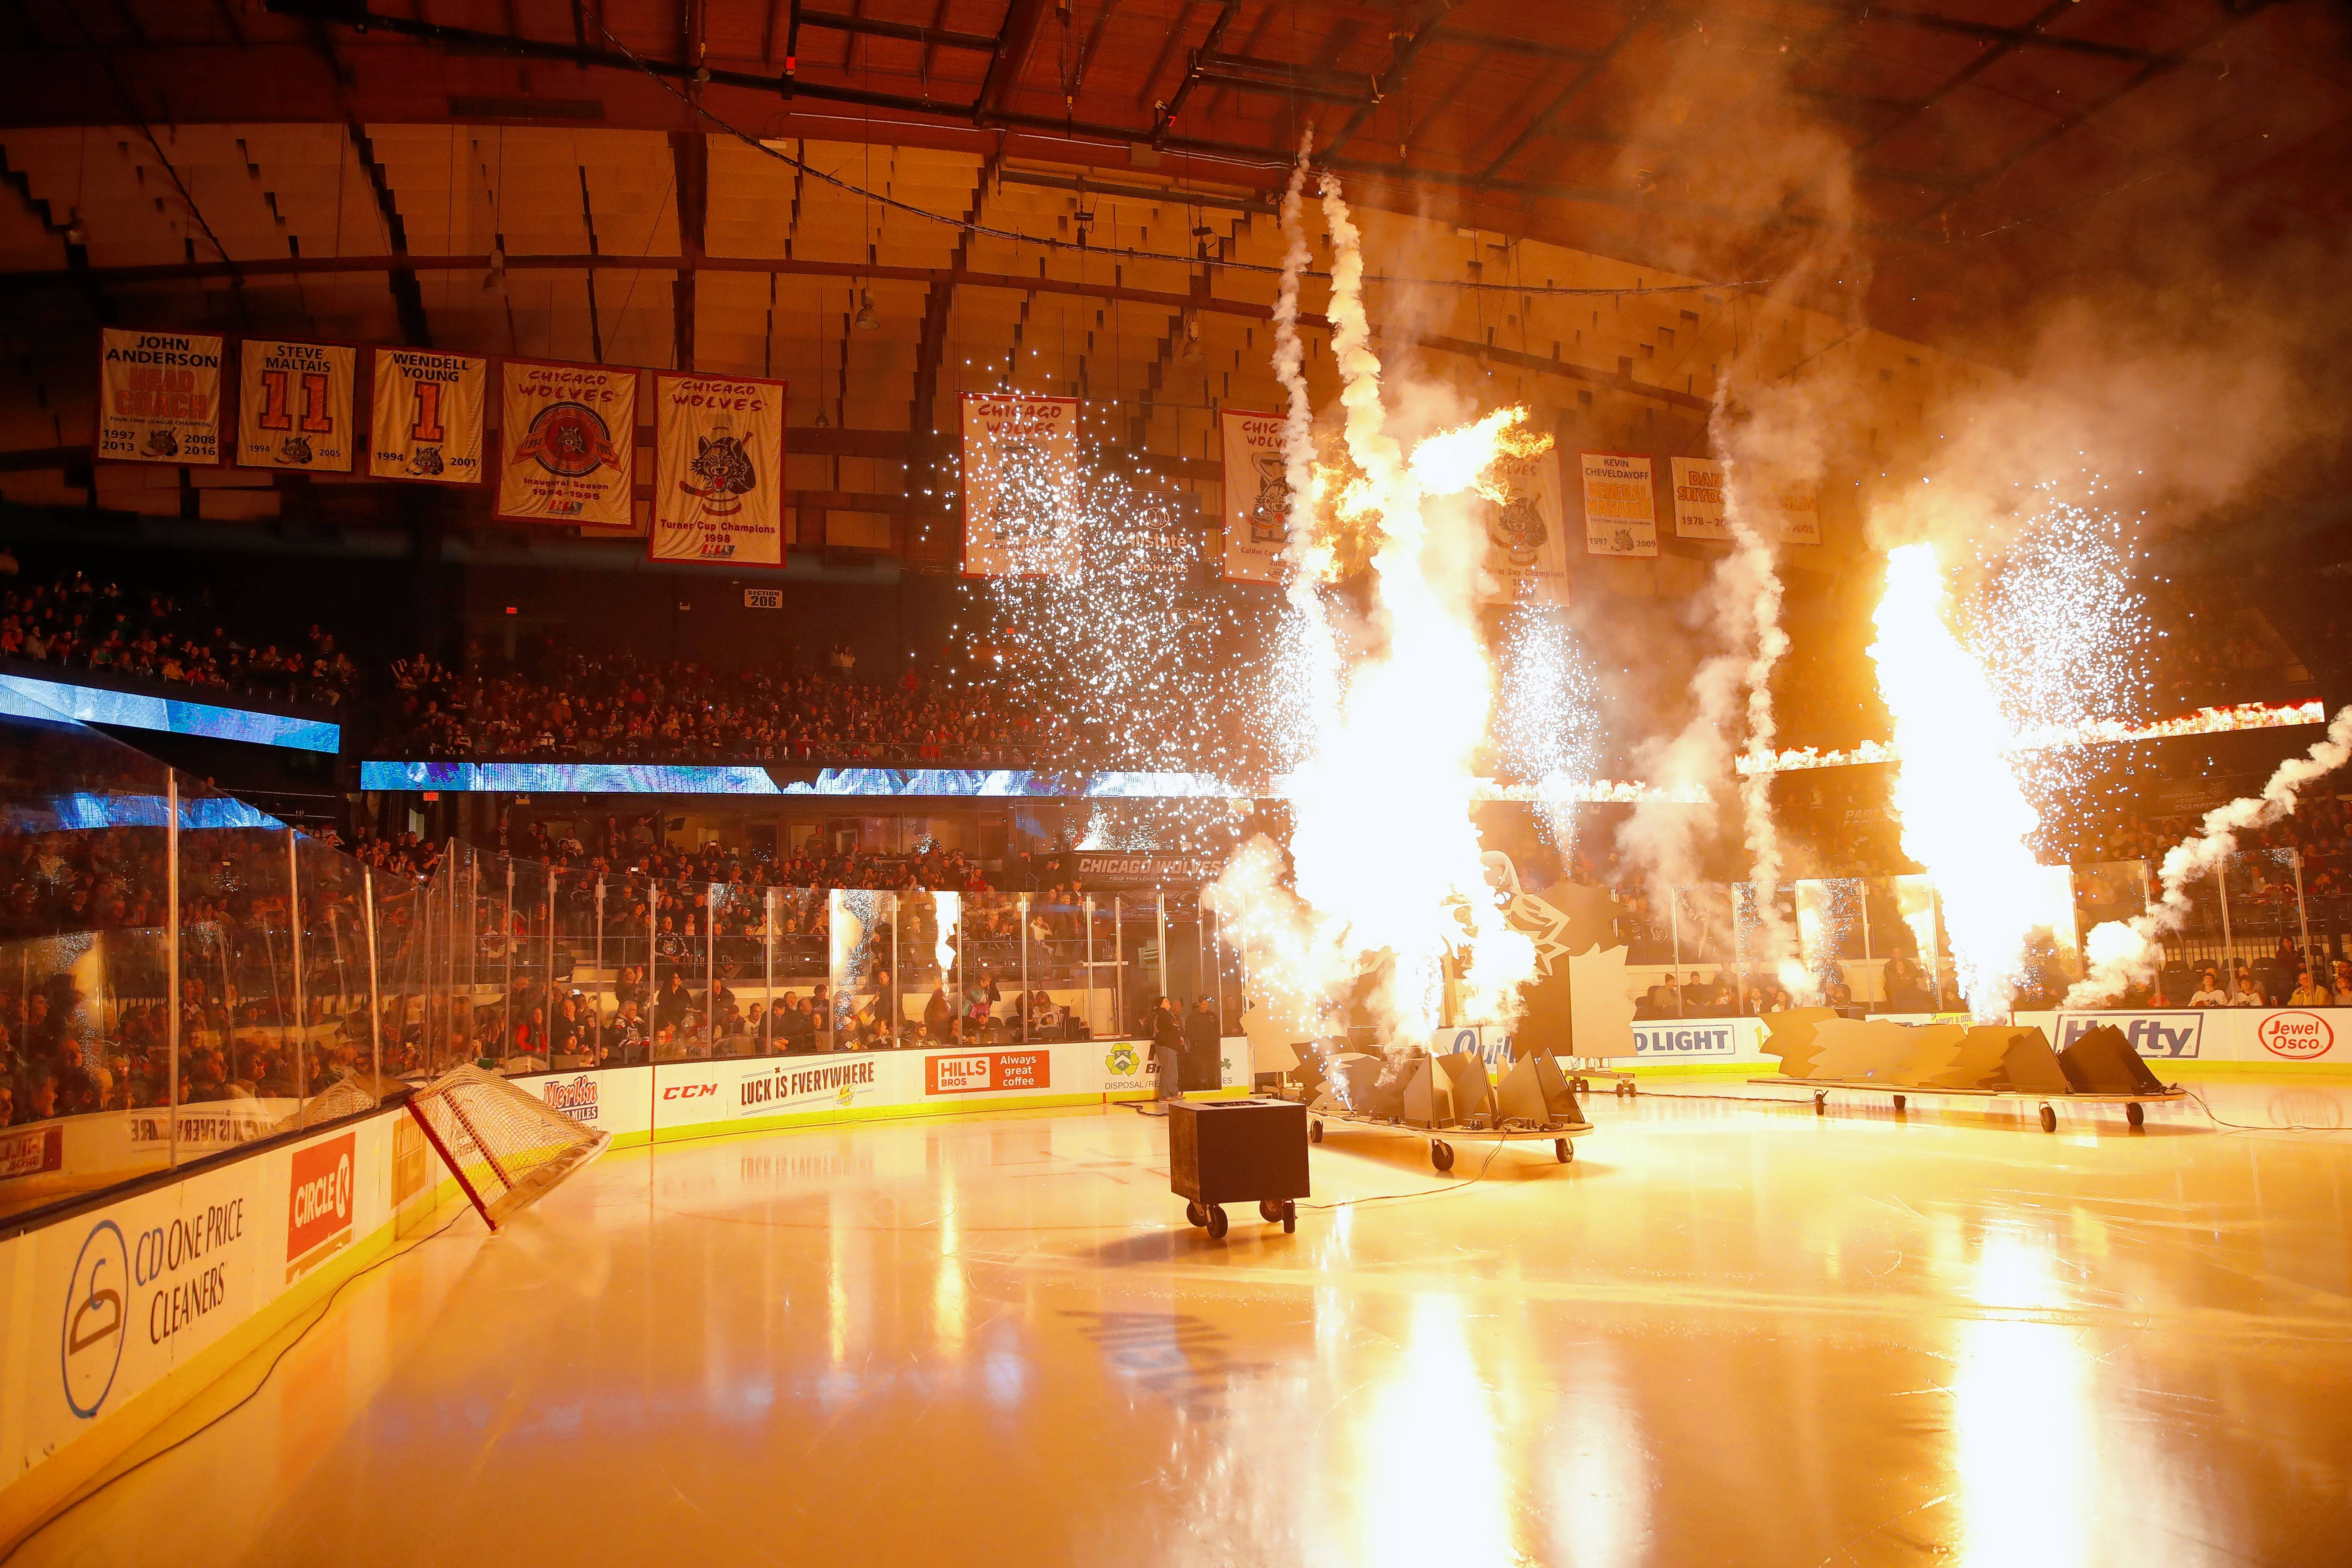 Strictly FX of Wood Dale creates the Chicago Wolves' pregame pyrotechnics. Since beginning to work with the team in the mid-1990s, the company has grown to provide pyrotechnics for major rock concerts and the Super Bowl.